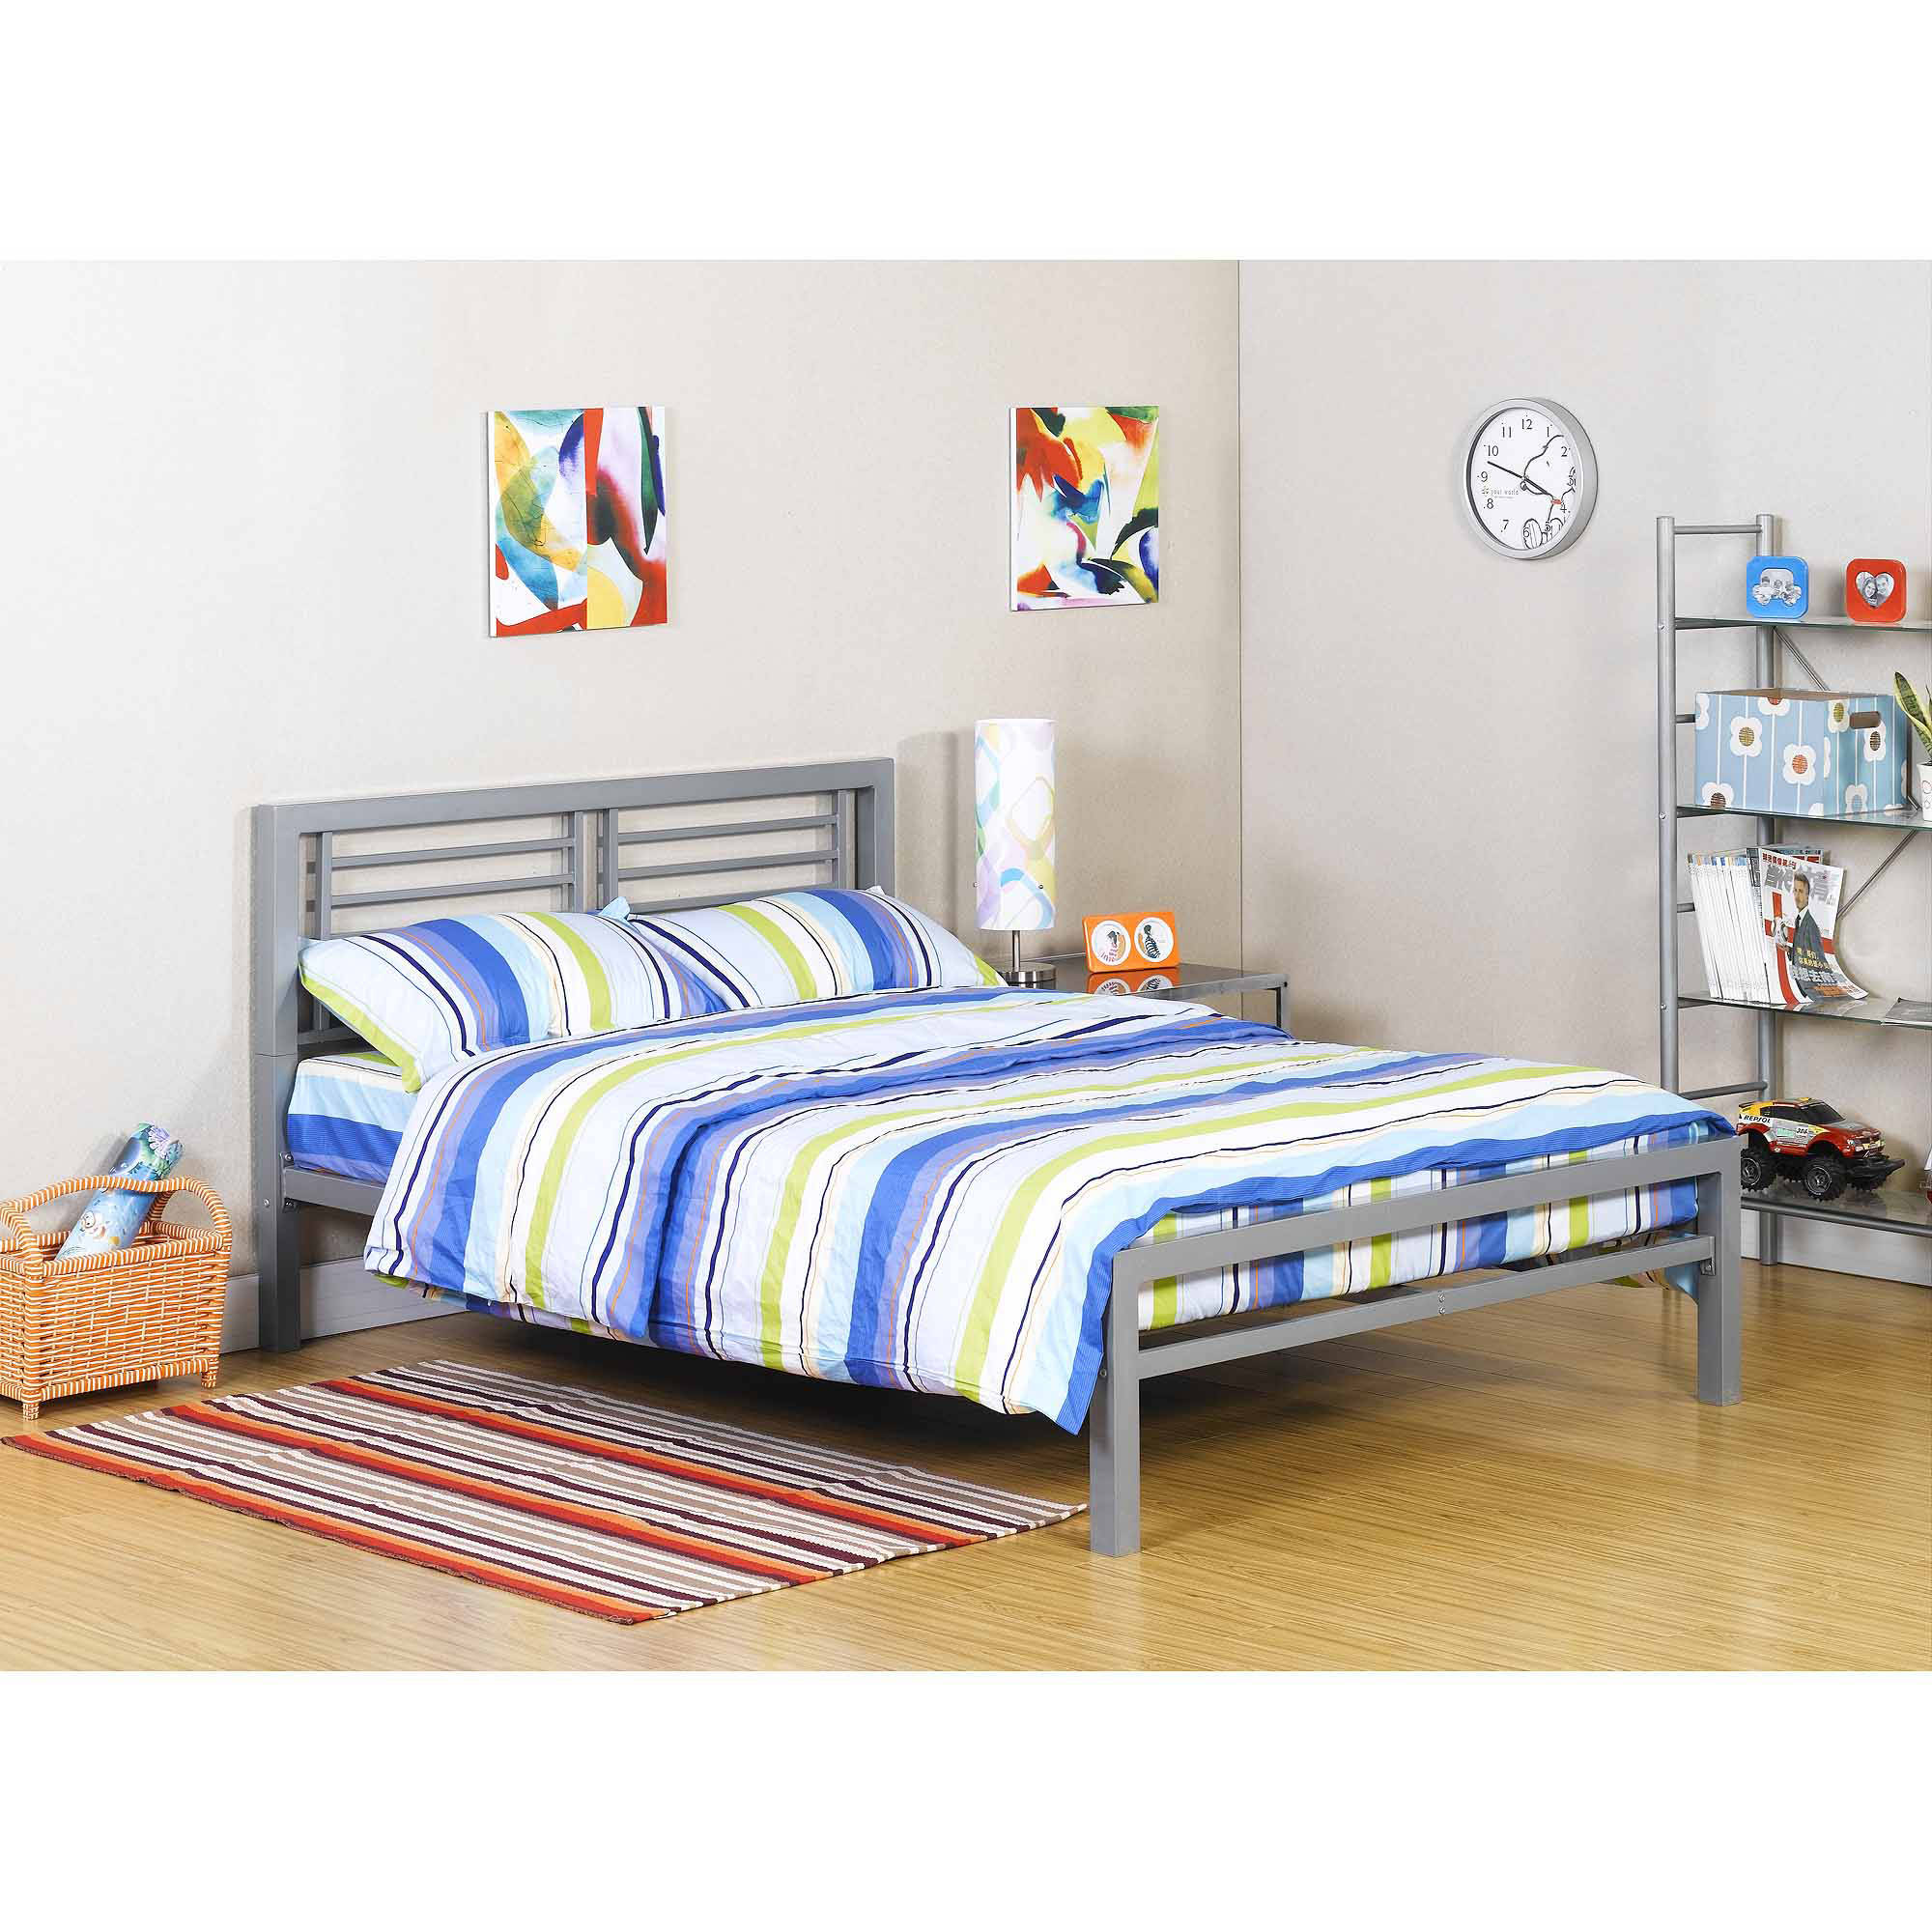 ... your zone metal full bed, multiple colors MNBRQIM